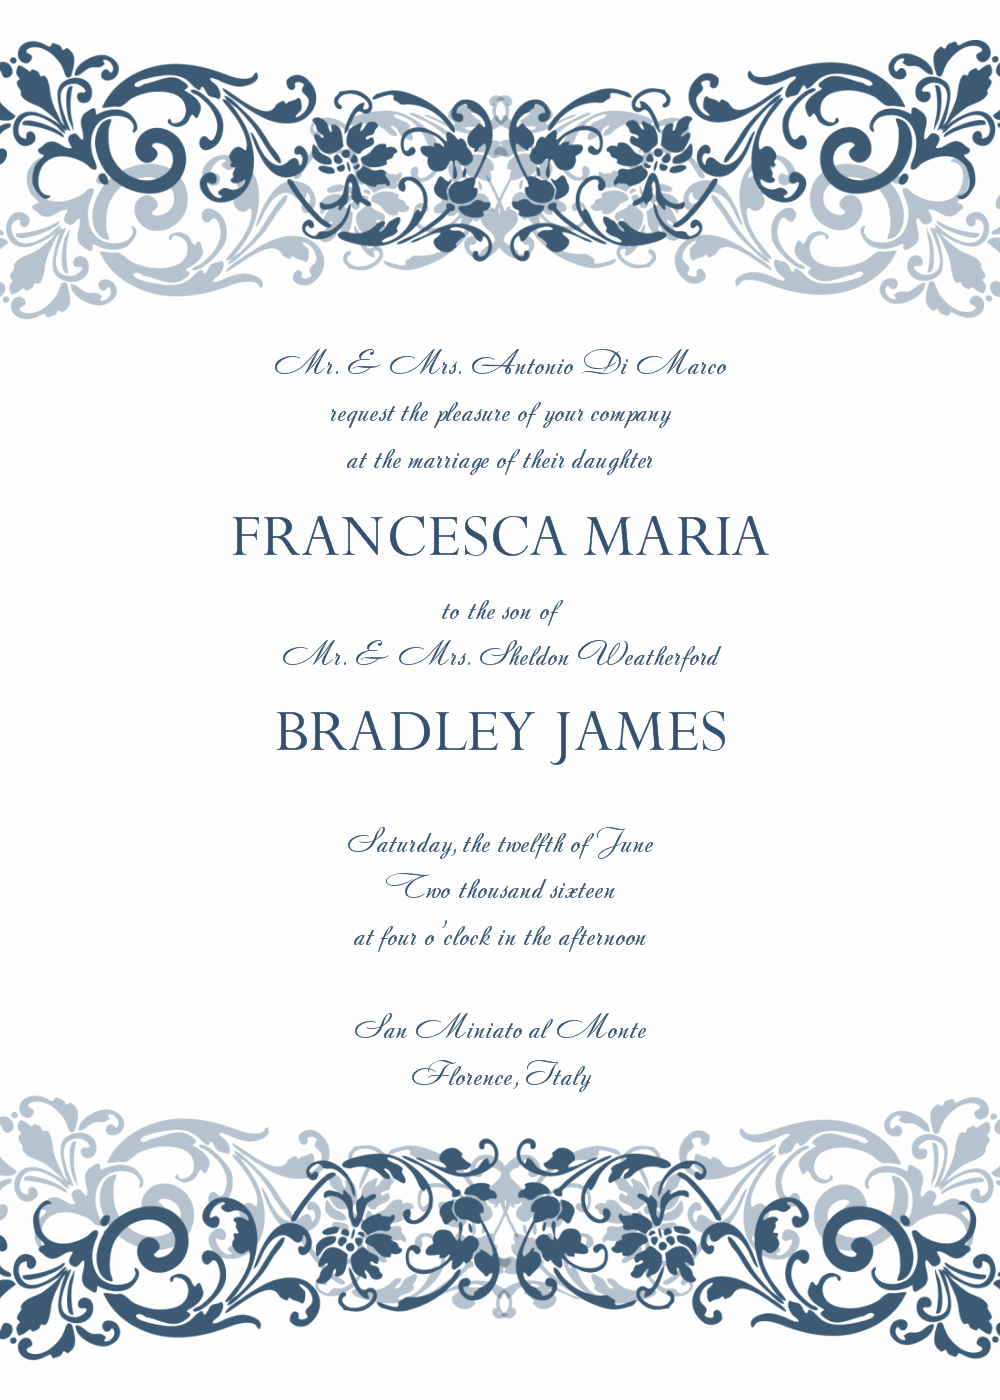 Wedding Invitation Template for Word Inspirational 6 Wedding Invitation Templates Word Excel Pdf Templates